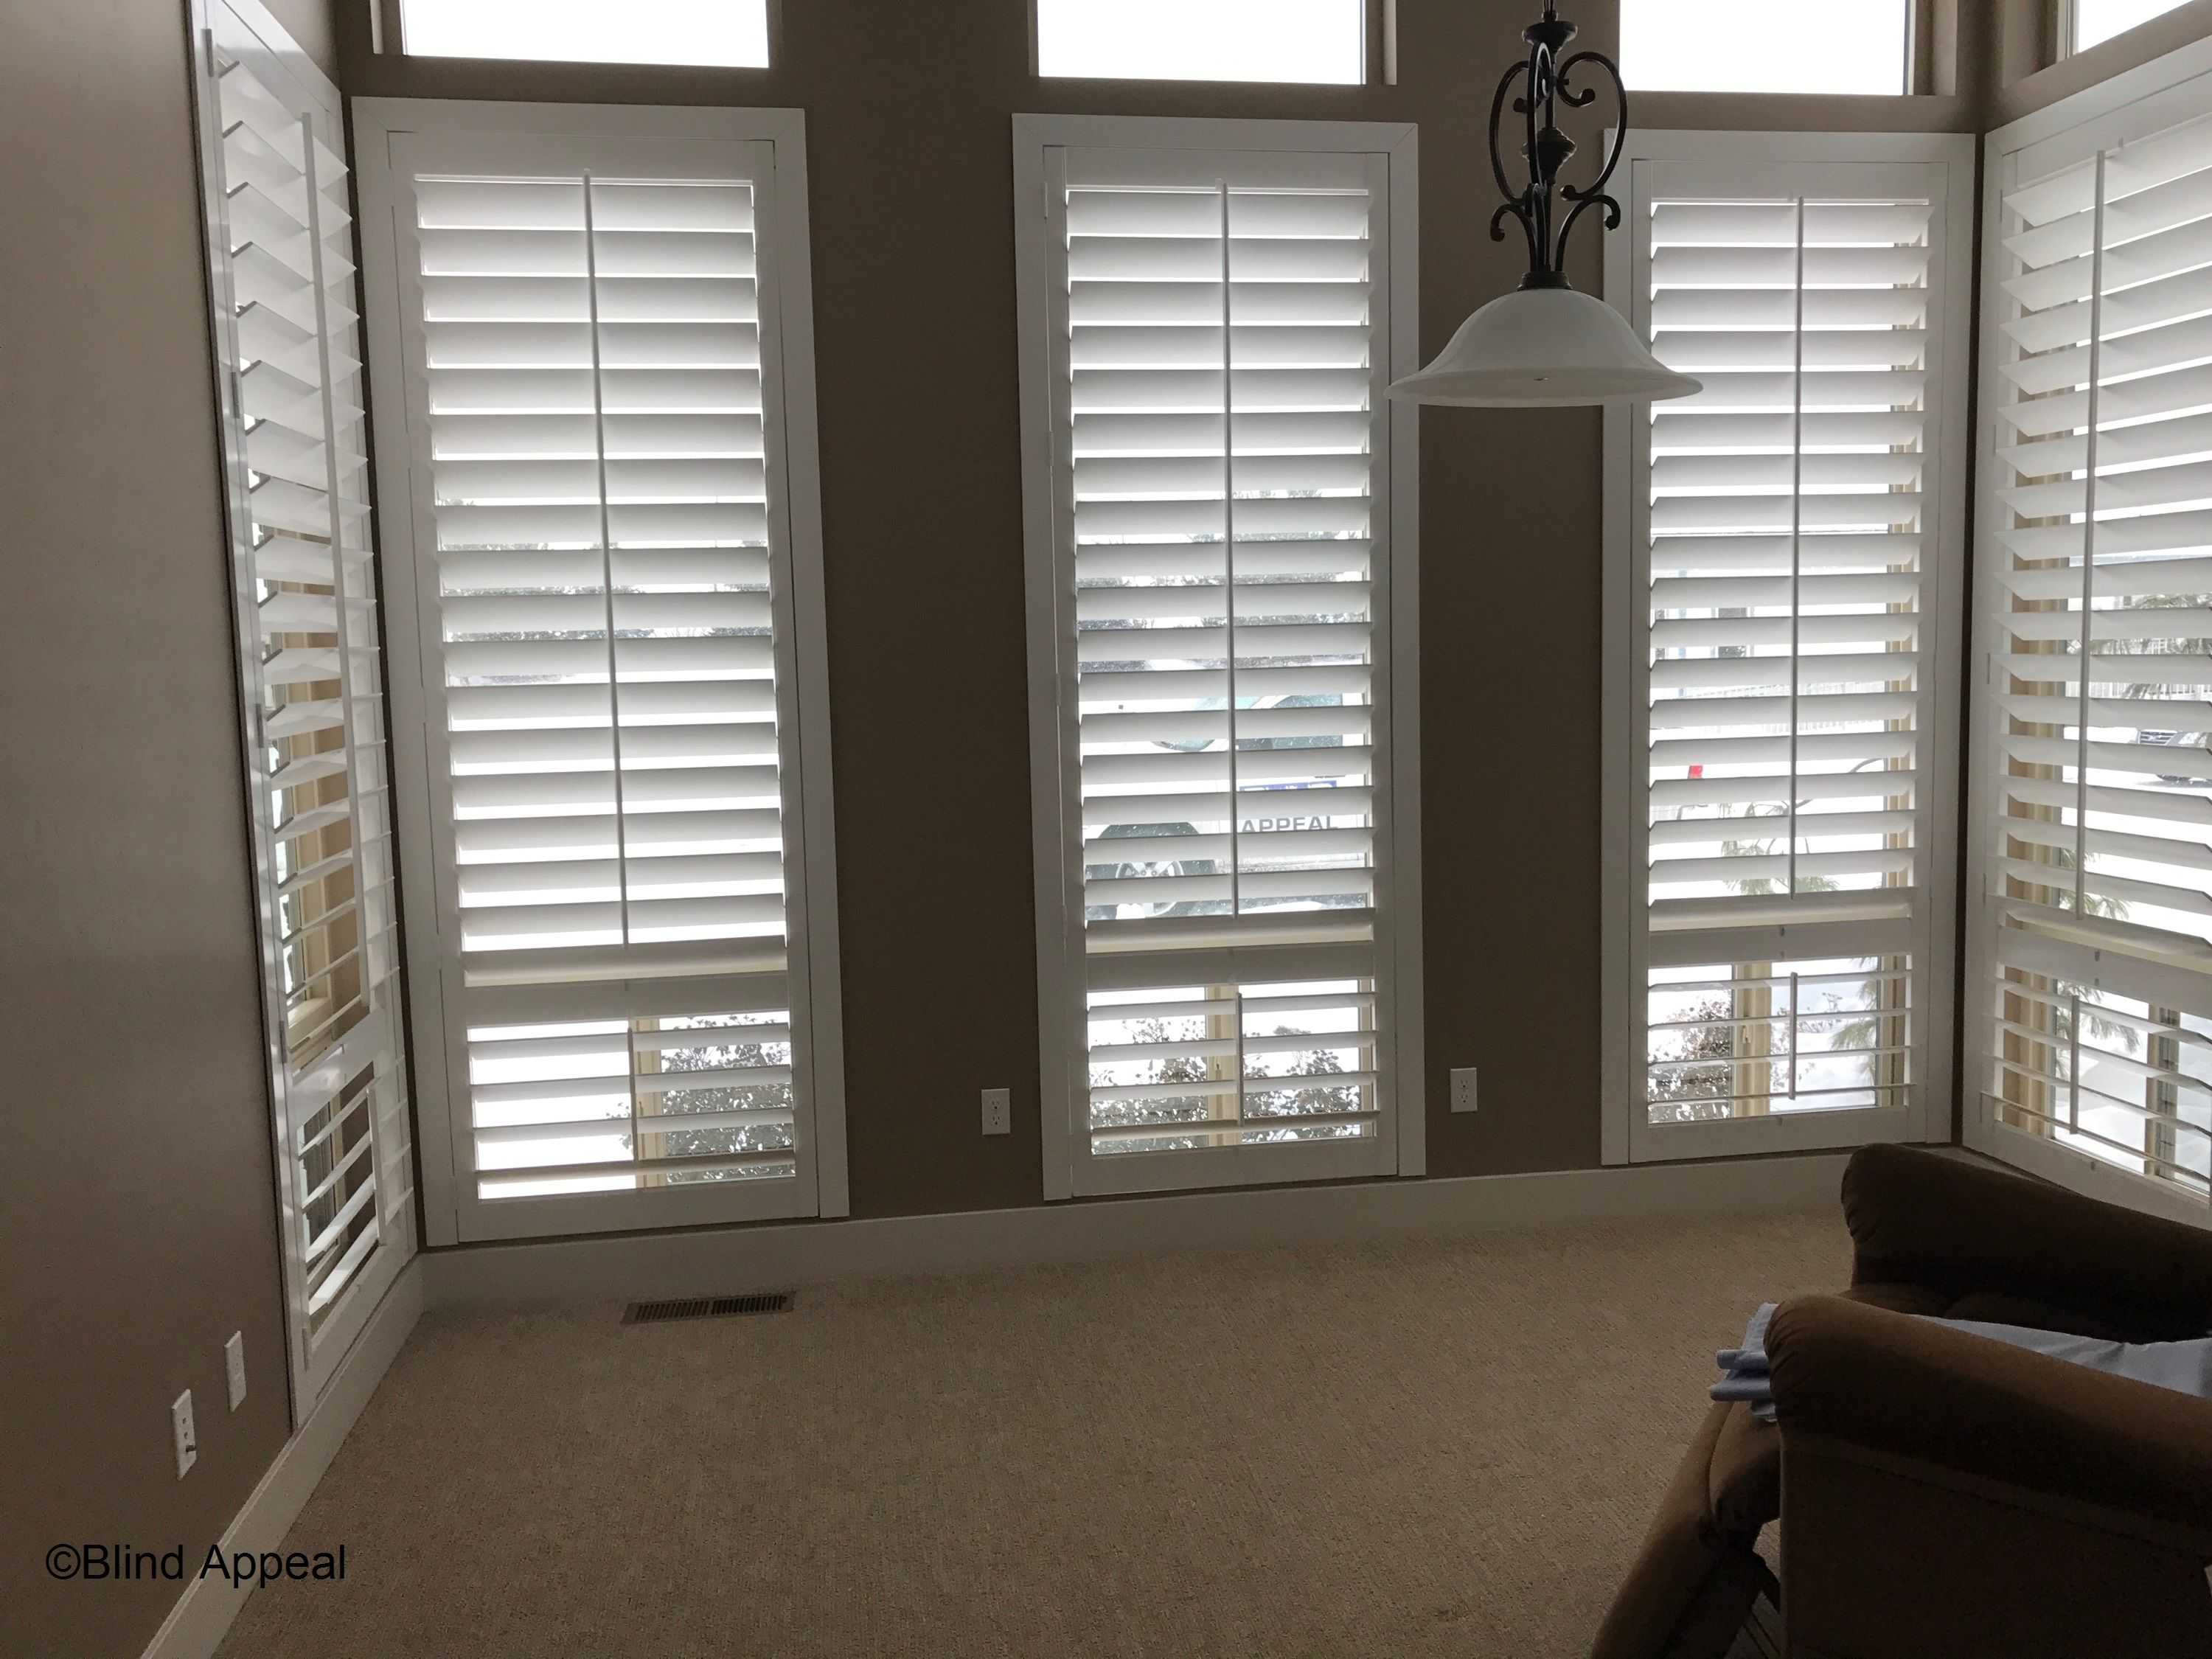 of new window decor elegant gratograt shutter shutters roman blinds albemarle lowes photos shades